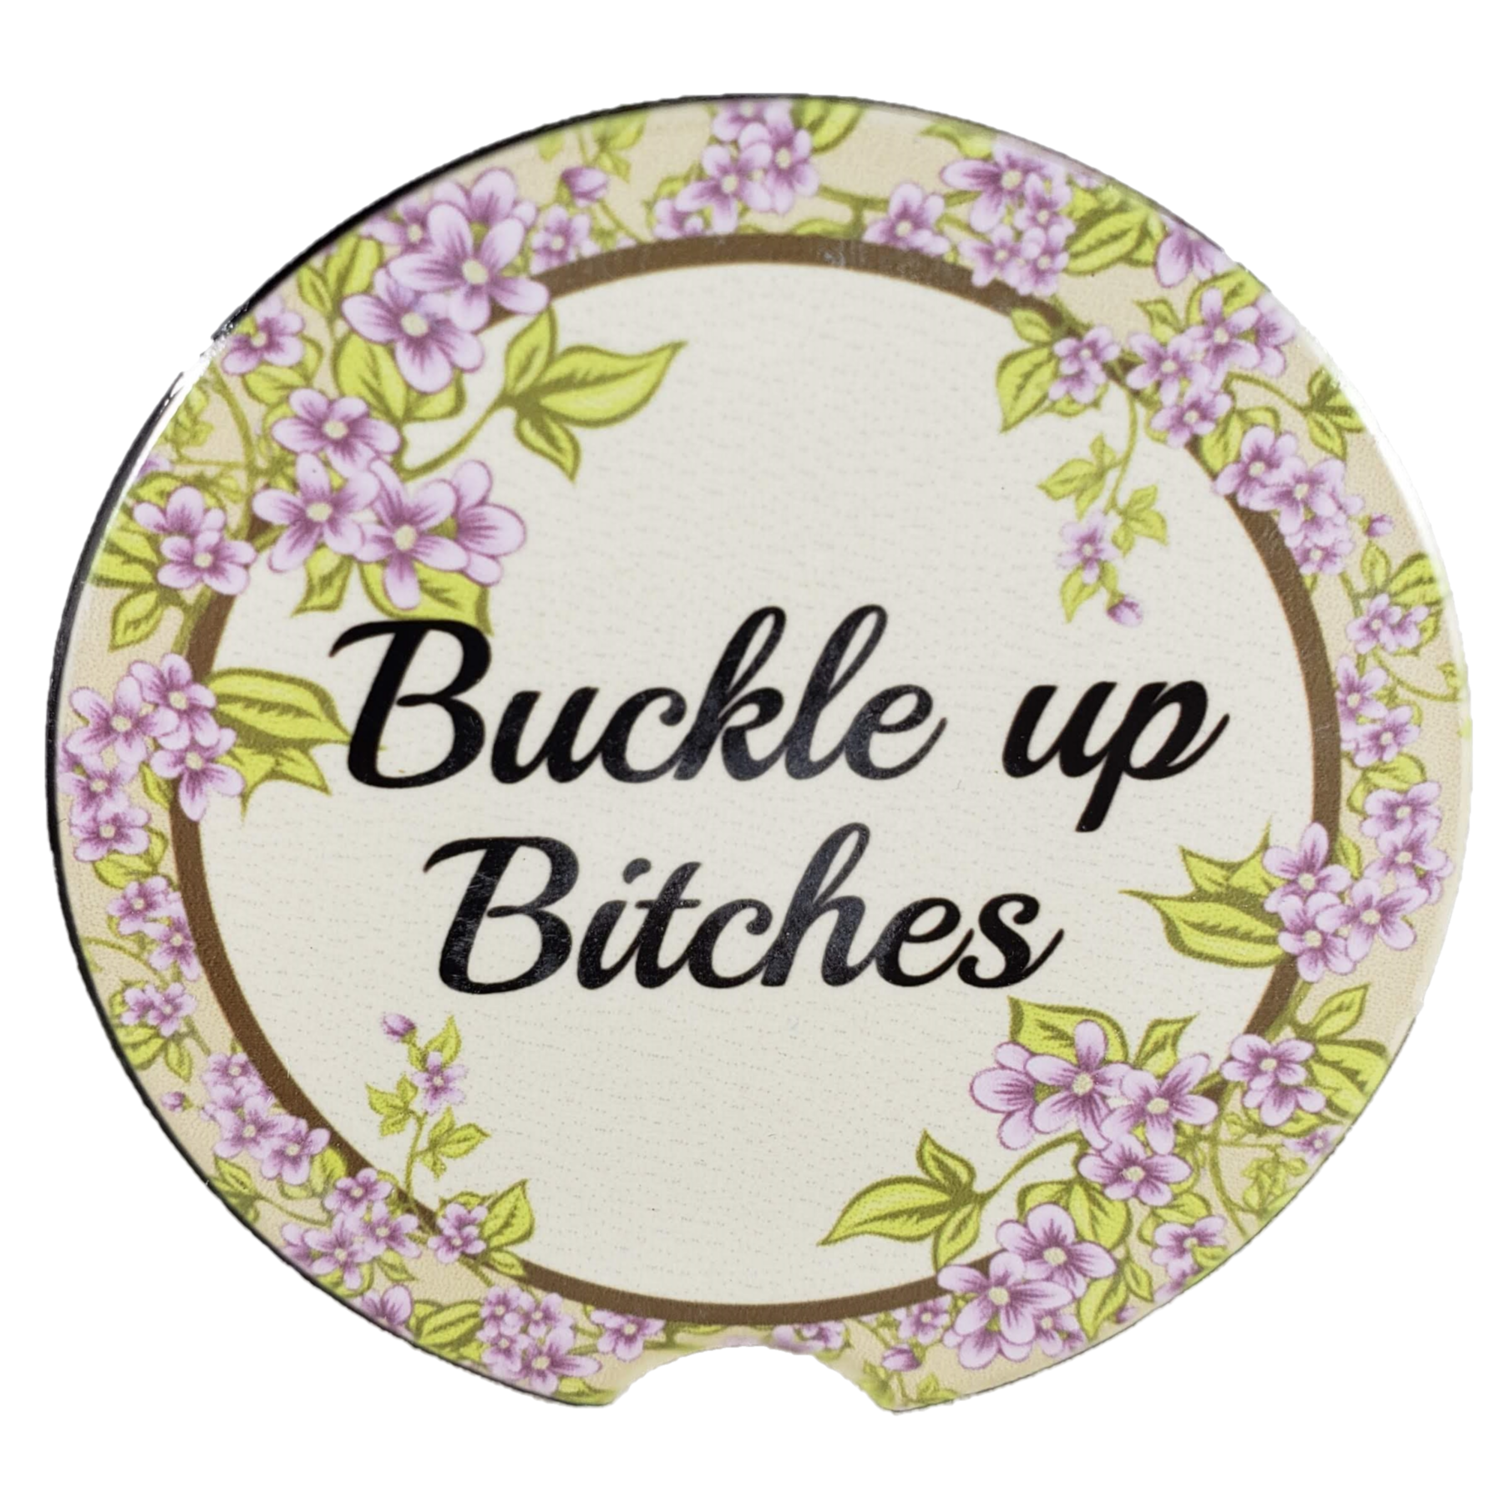 Buckle up Bitches Sandstone Car Coaster - Set of Two